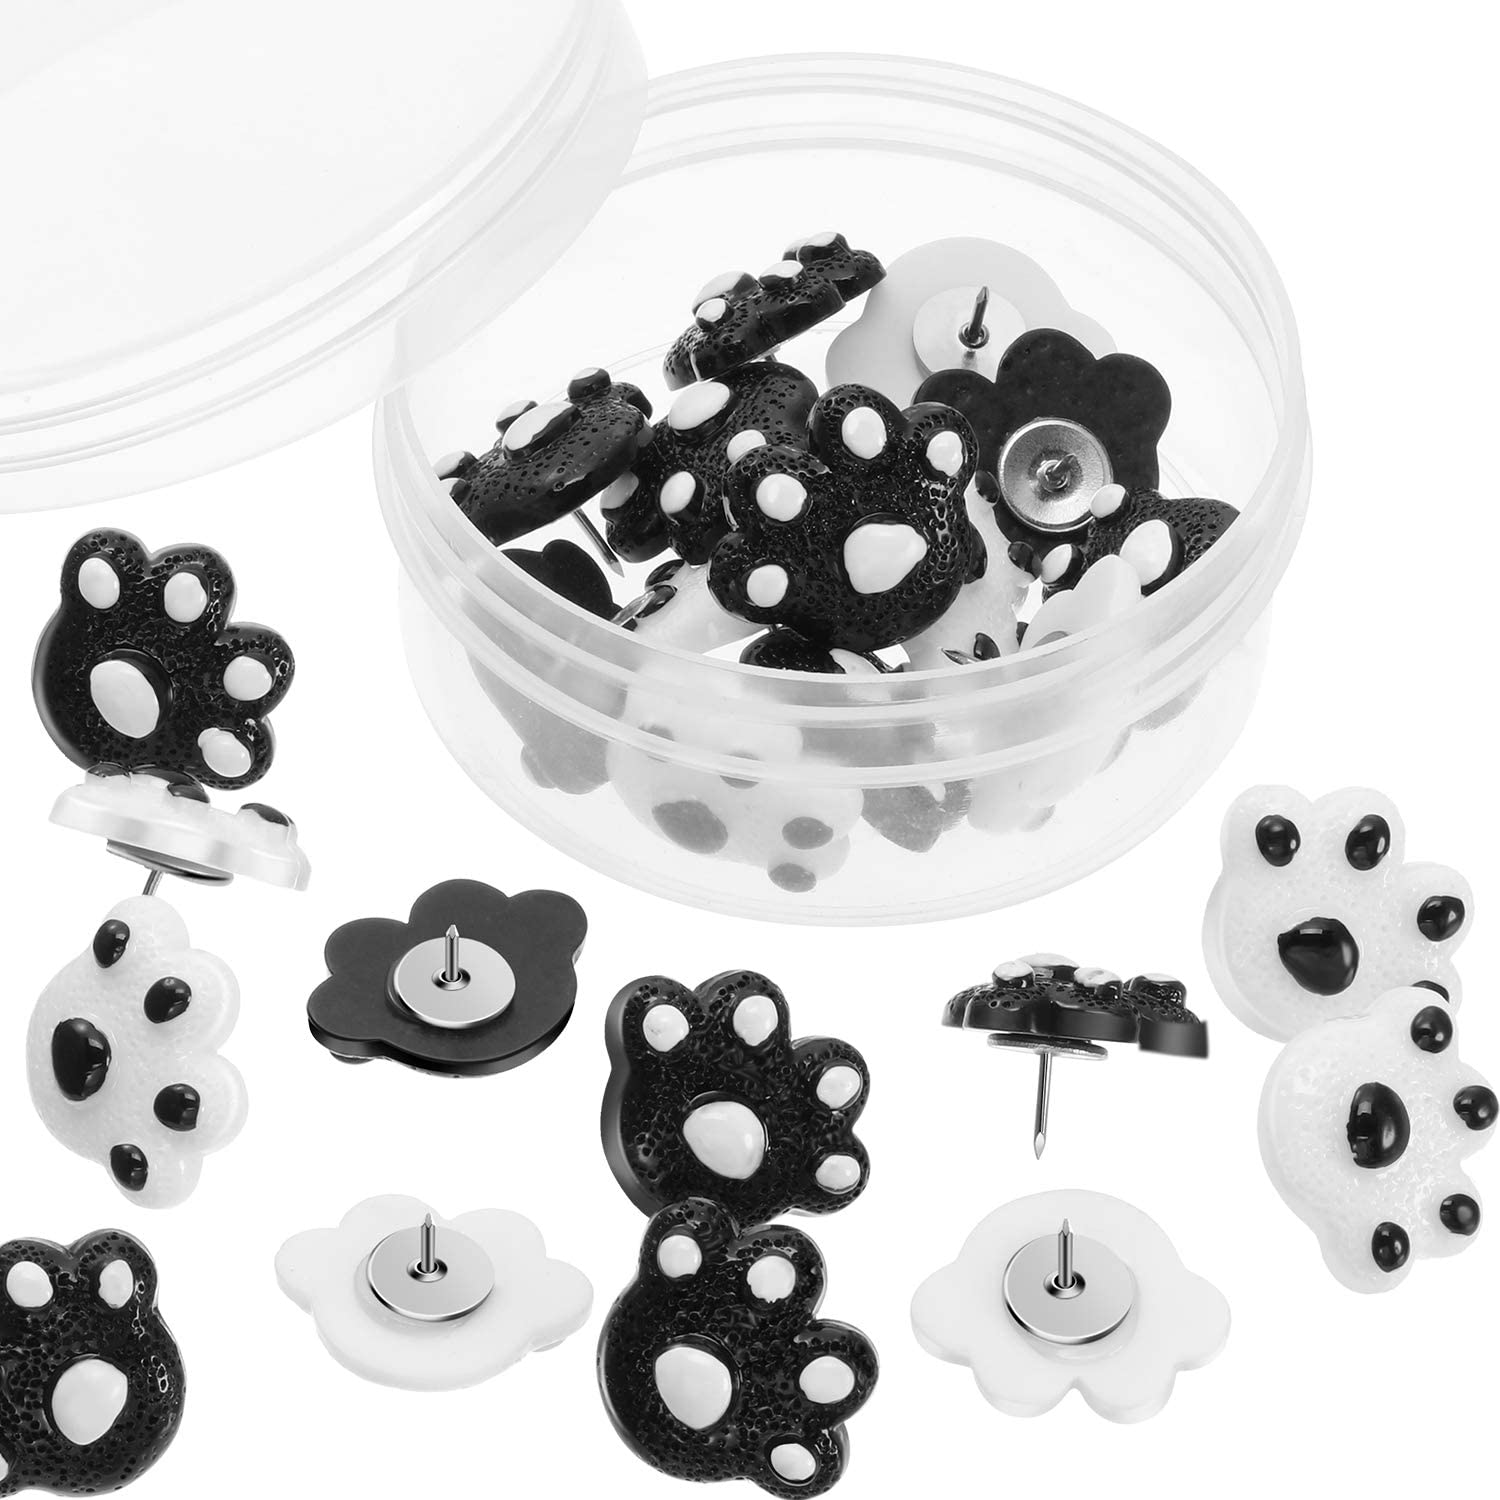 25 Pieces Paw Print Push Pins Animal Paw Thumb Tacks Decorative Pushpins for Cork Boards Home and Office (Color 1)